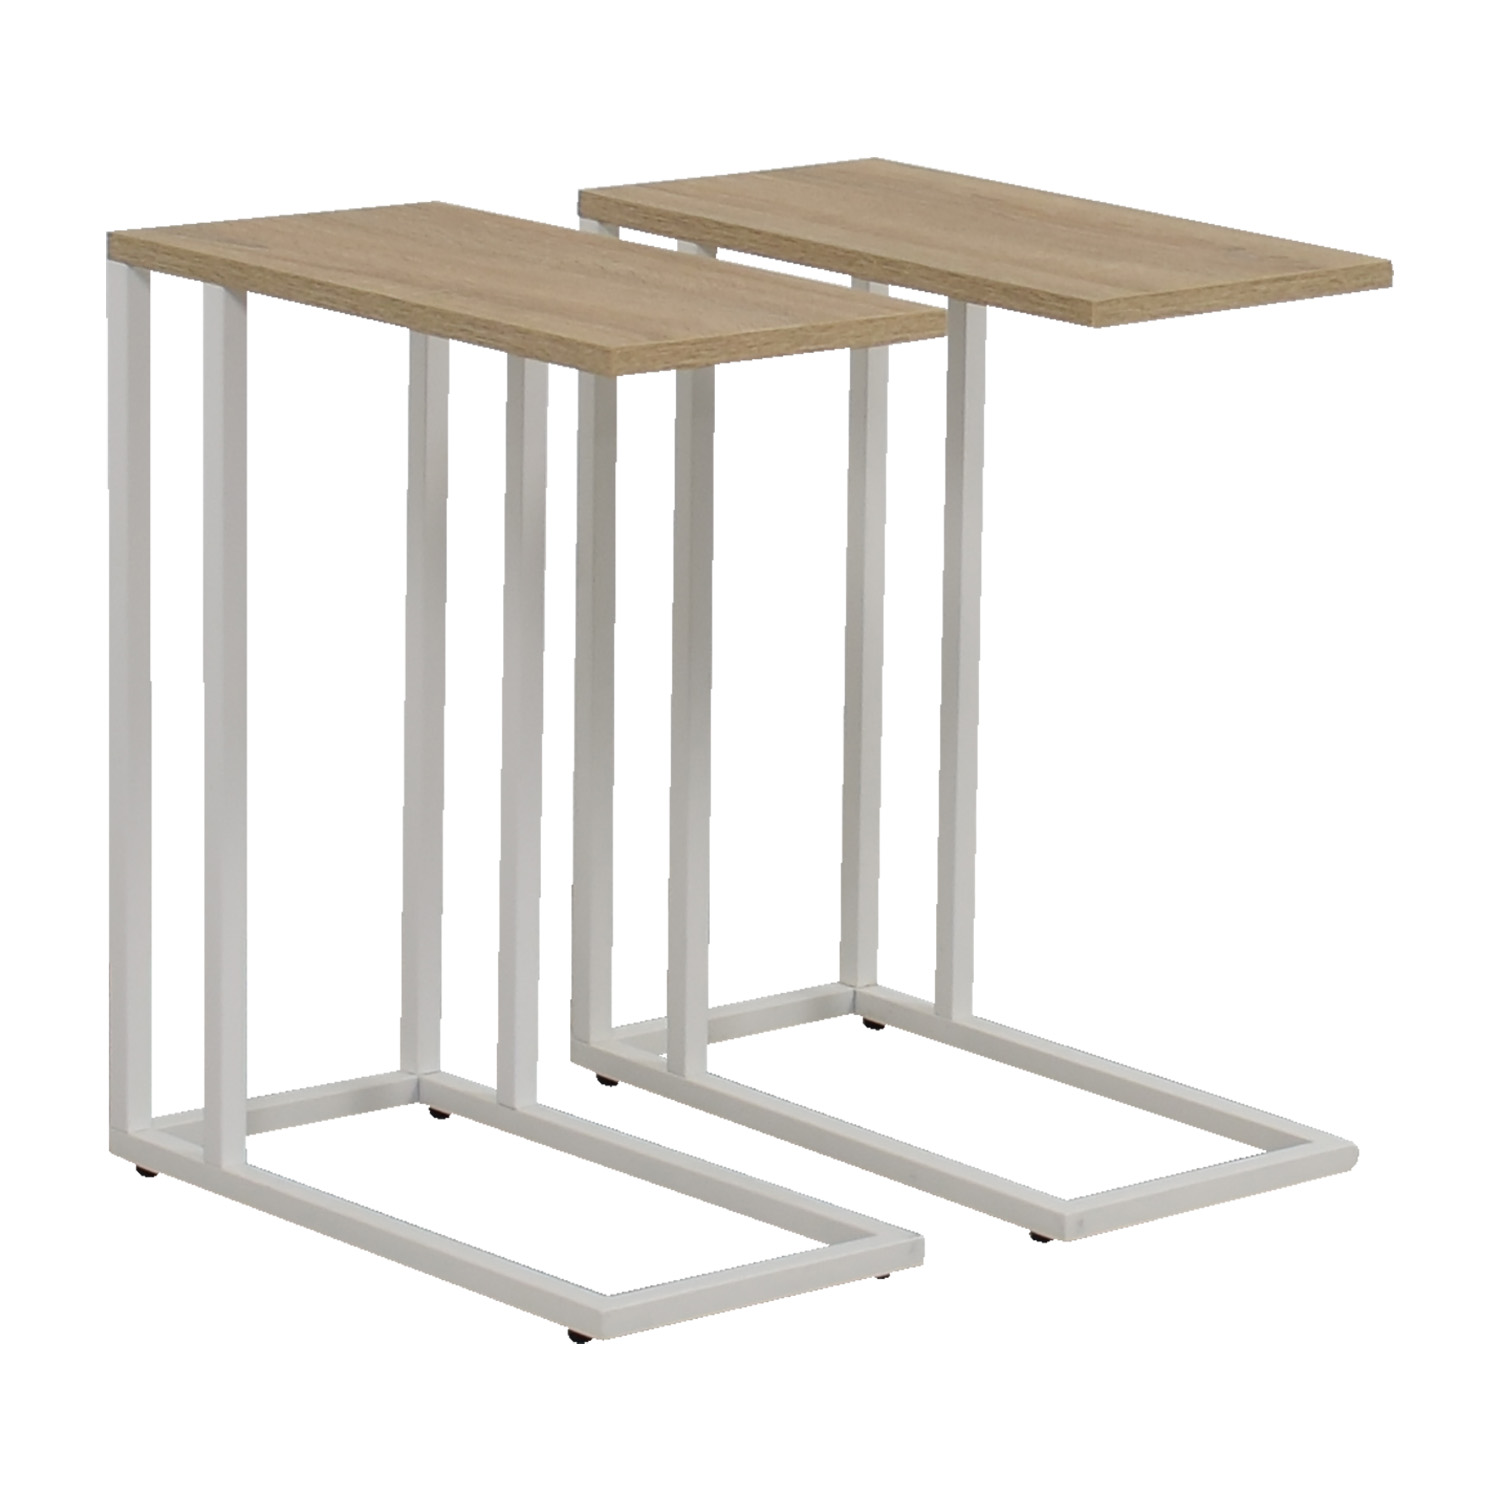 61 off container store container store white and natural wood side tables tables. Black Bedroom Furniture Sets. Home Design Ideas